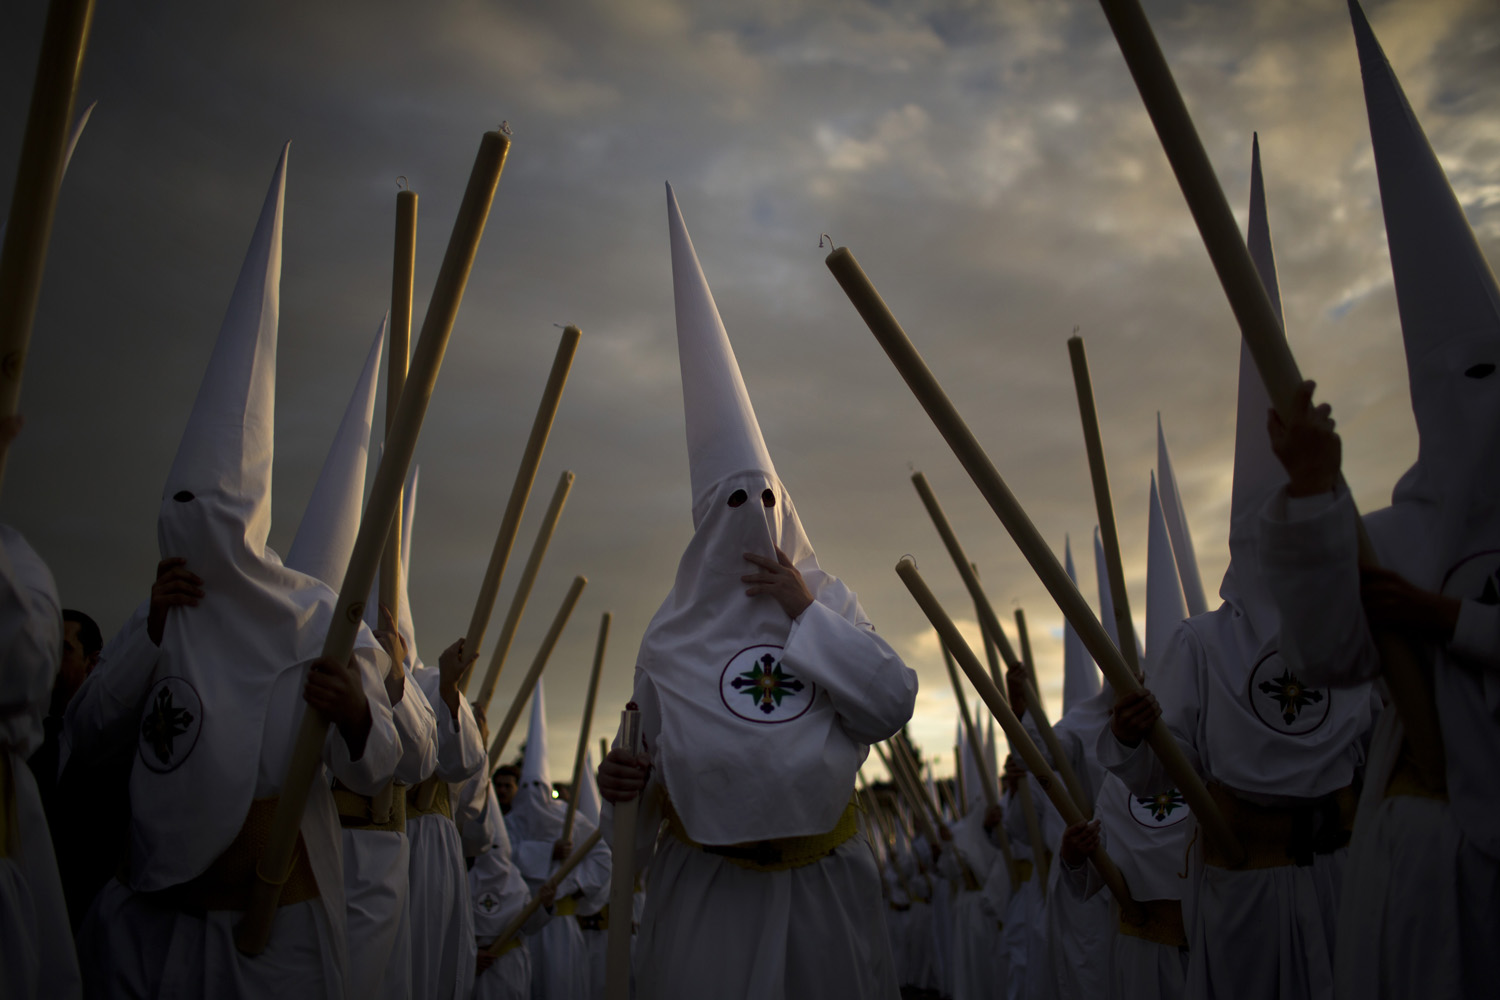 March 25, 2013. Penitents from  San Gonzalo  brotherhood take part in a procession in Seville, Spain.